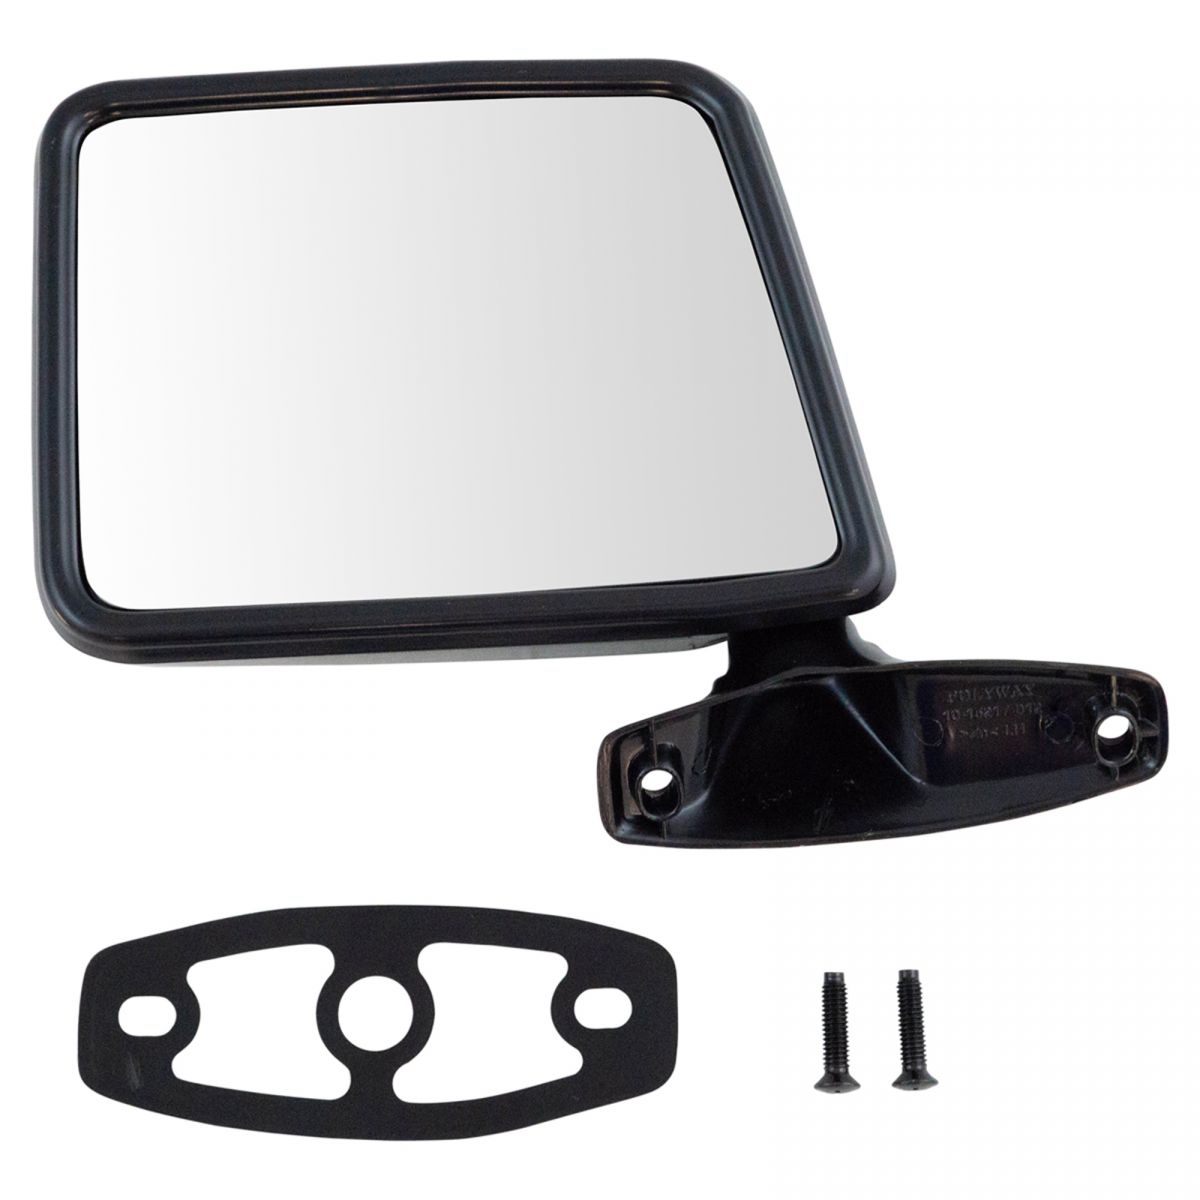 Black Manual Side View Door Mirror Driver Left LH for Ford Pickup Truck Explorer